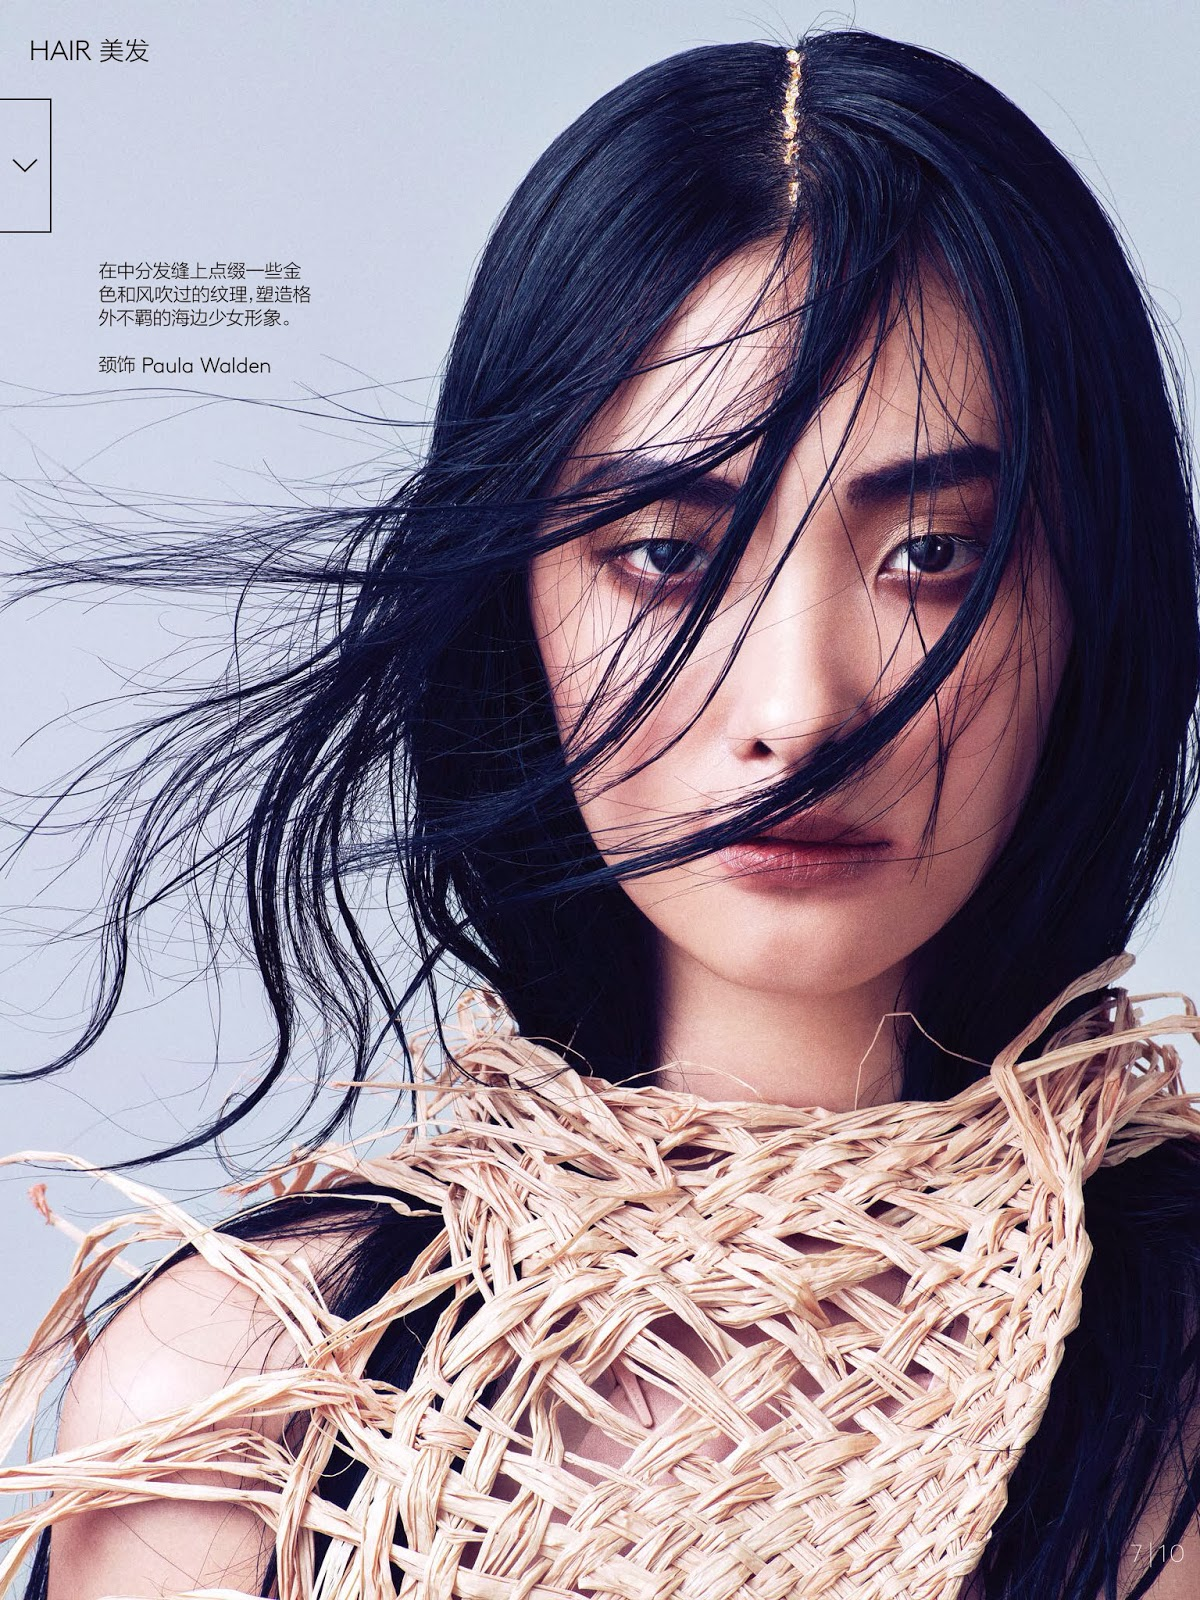 Ji Young Kwak HQ Pictures Vogue China Magazine Photoshoot March 2014